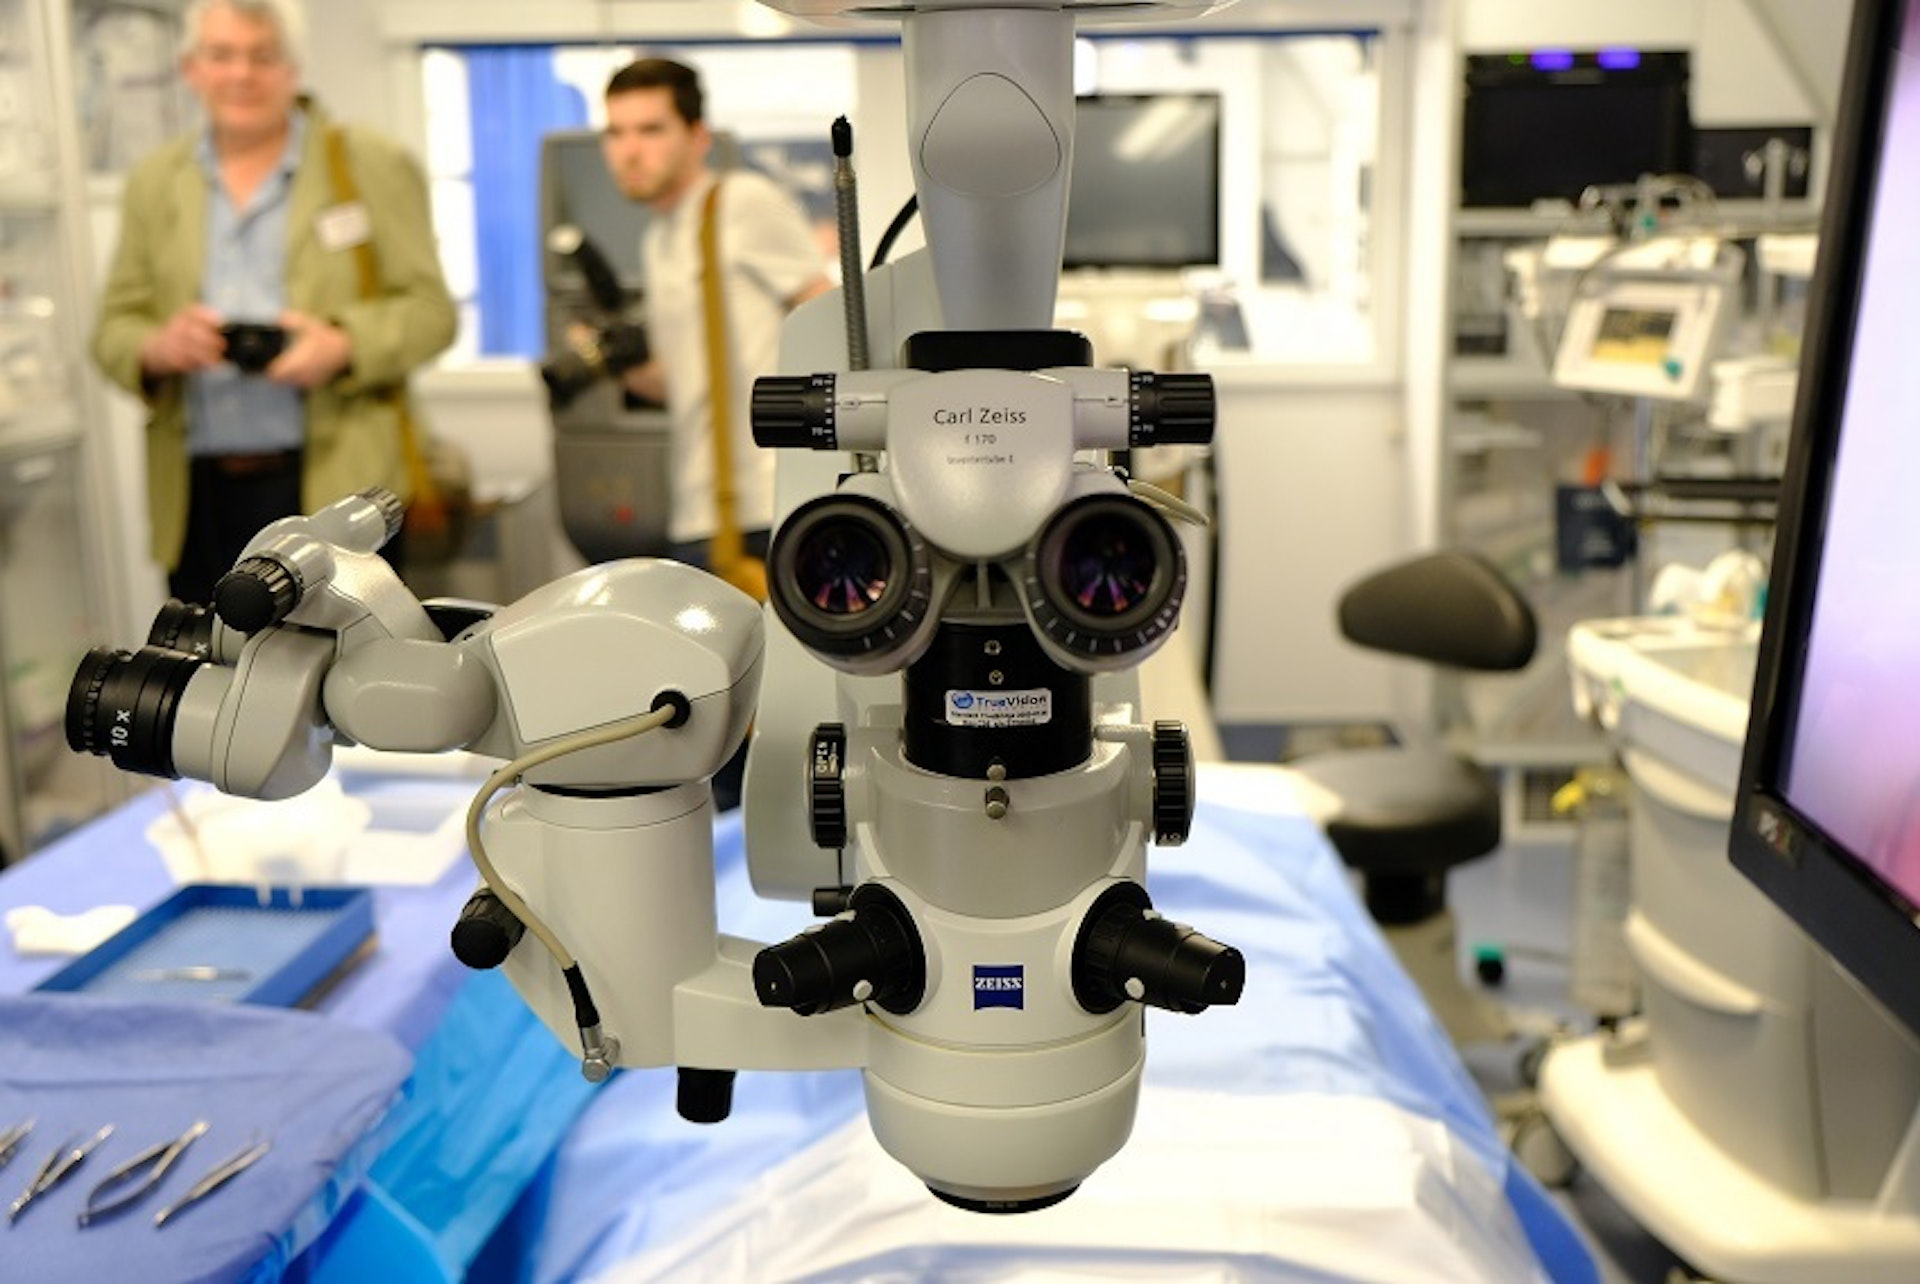 On board the Flying Eye Hospital, Ben Peet operates a microscope with the training arm